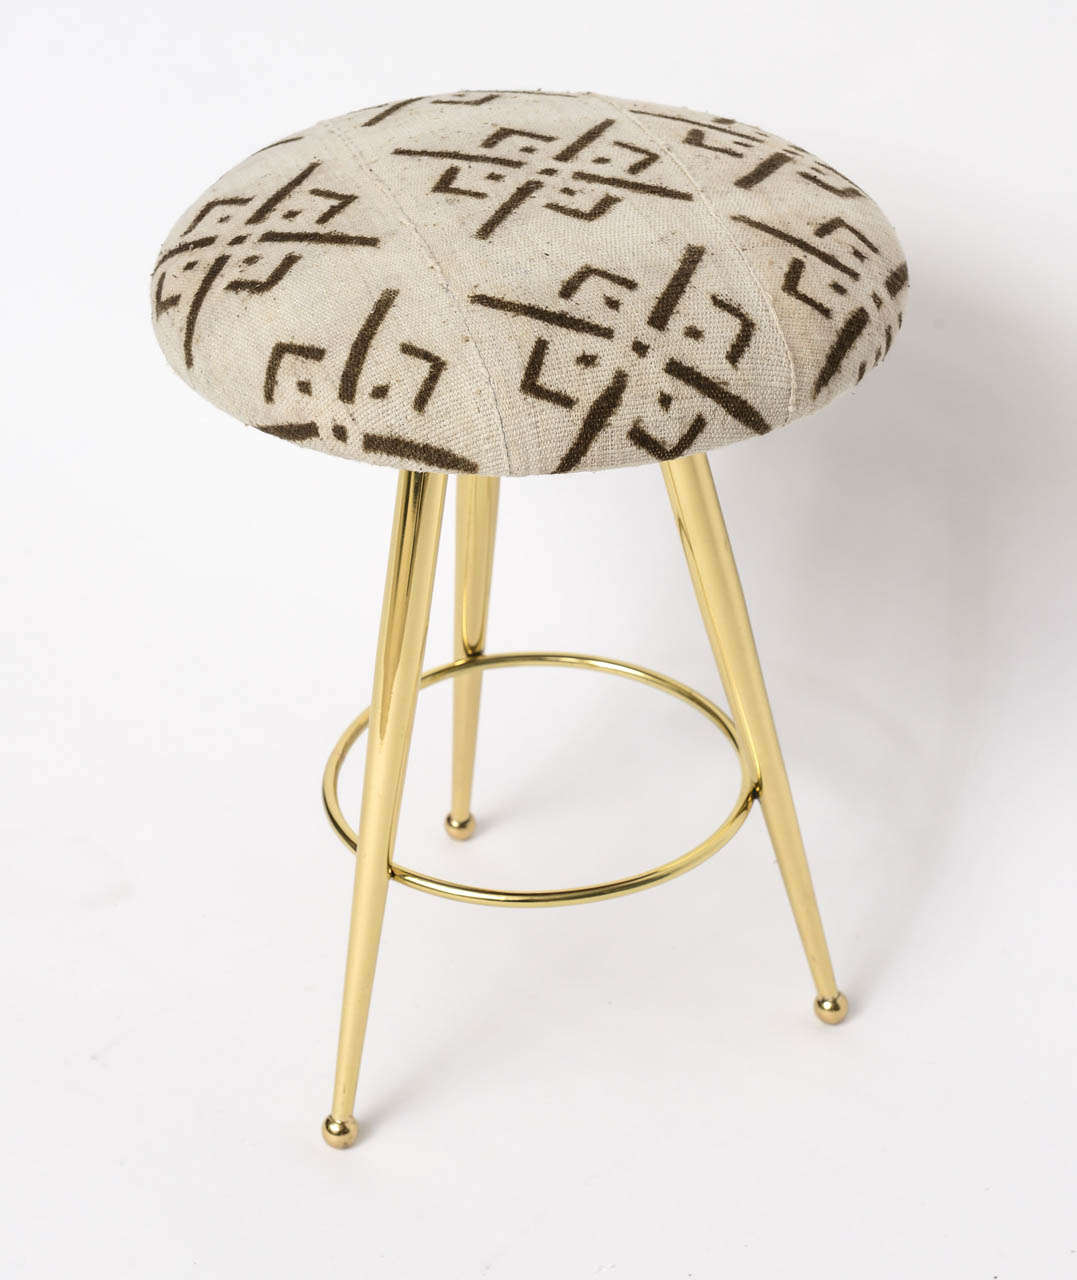 We love the contrast of the graphic, textured African mud cloth upholstery with the polished brass sophistication of this diminutive pair of 50's Italian stools.